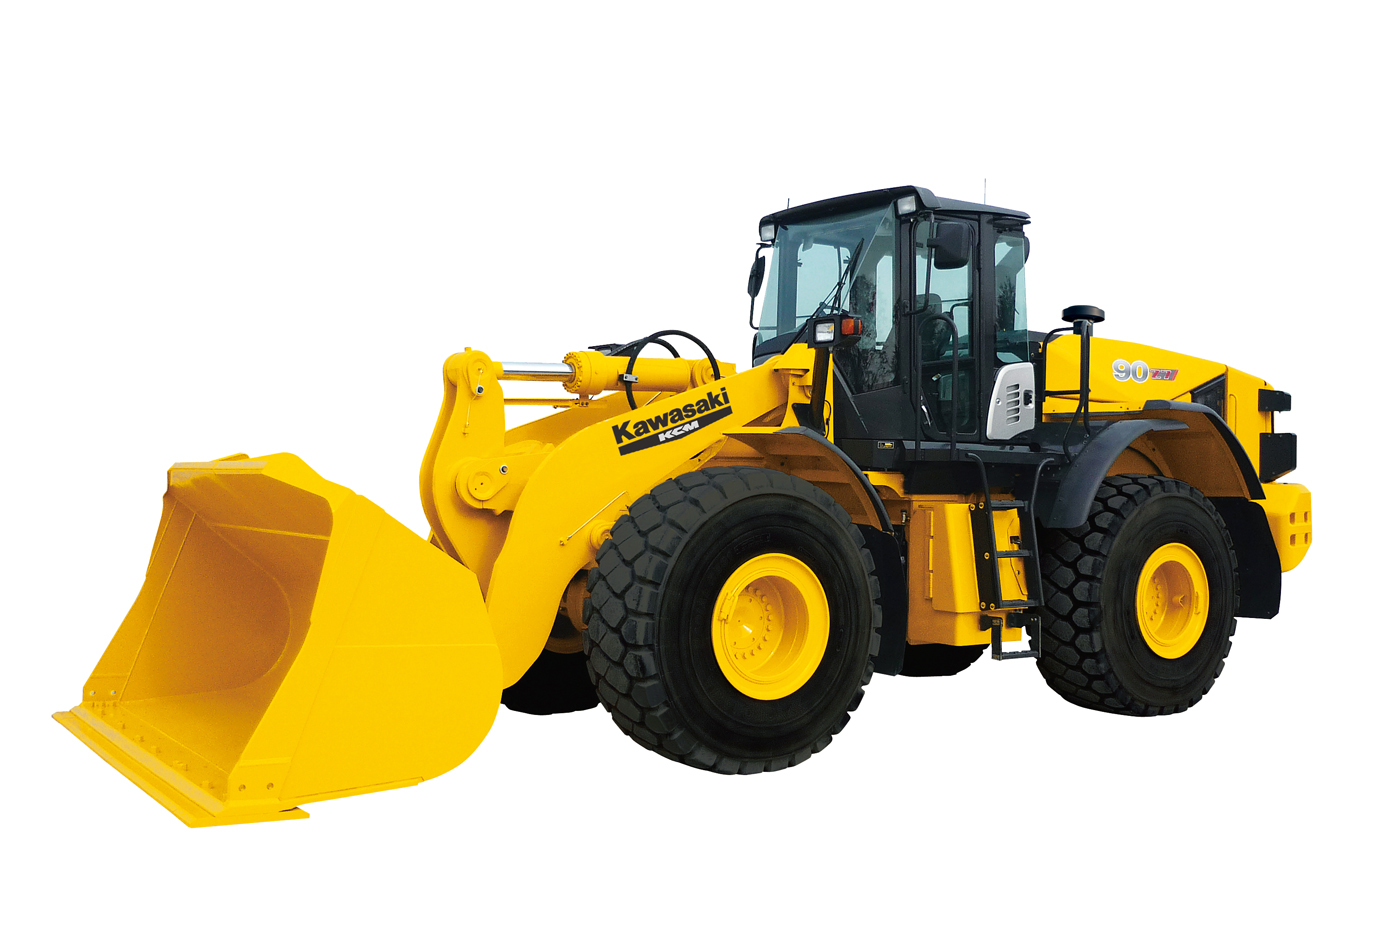 Kawasaki Launches 6 New Wheel Loader Models Compliant with 2011 ...